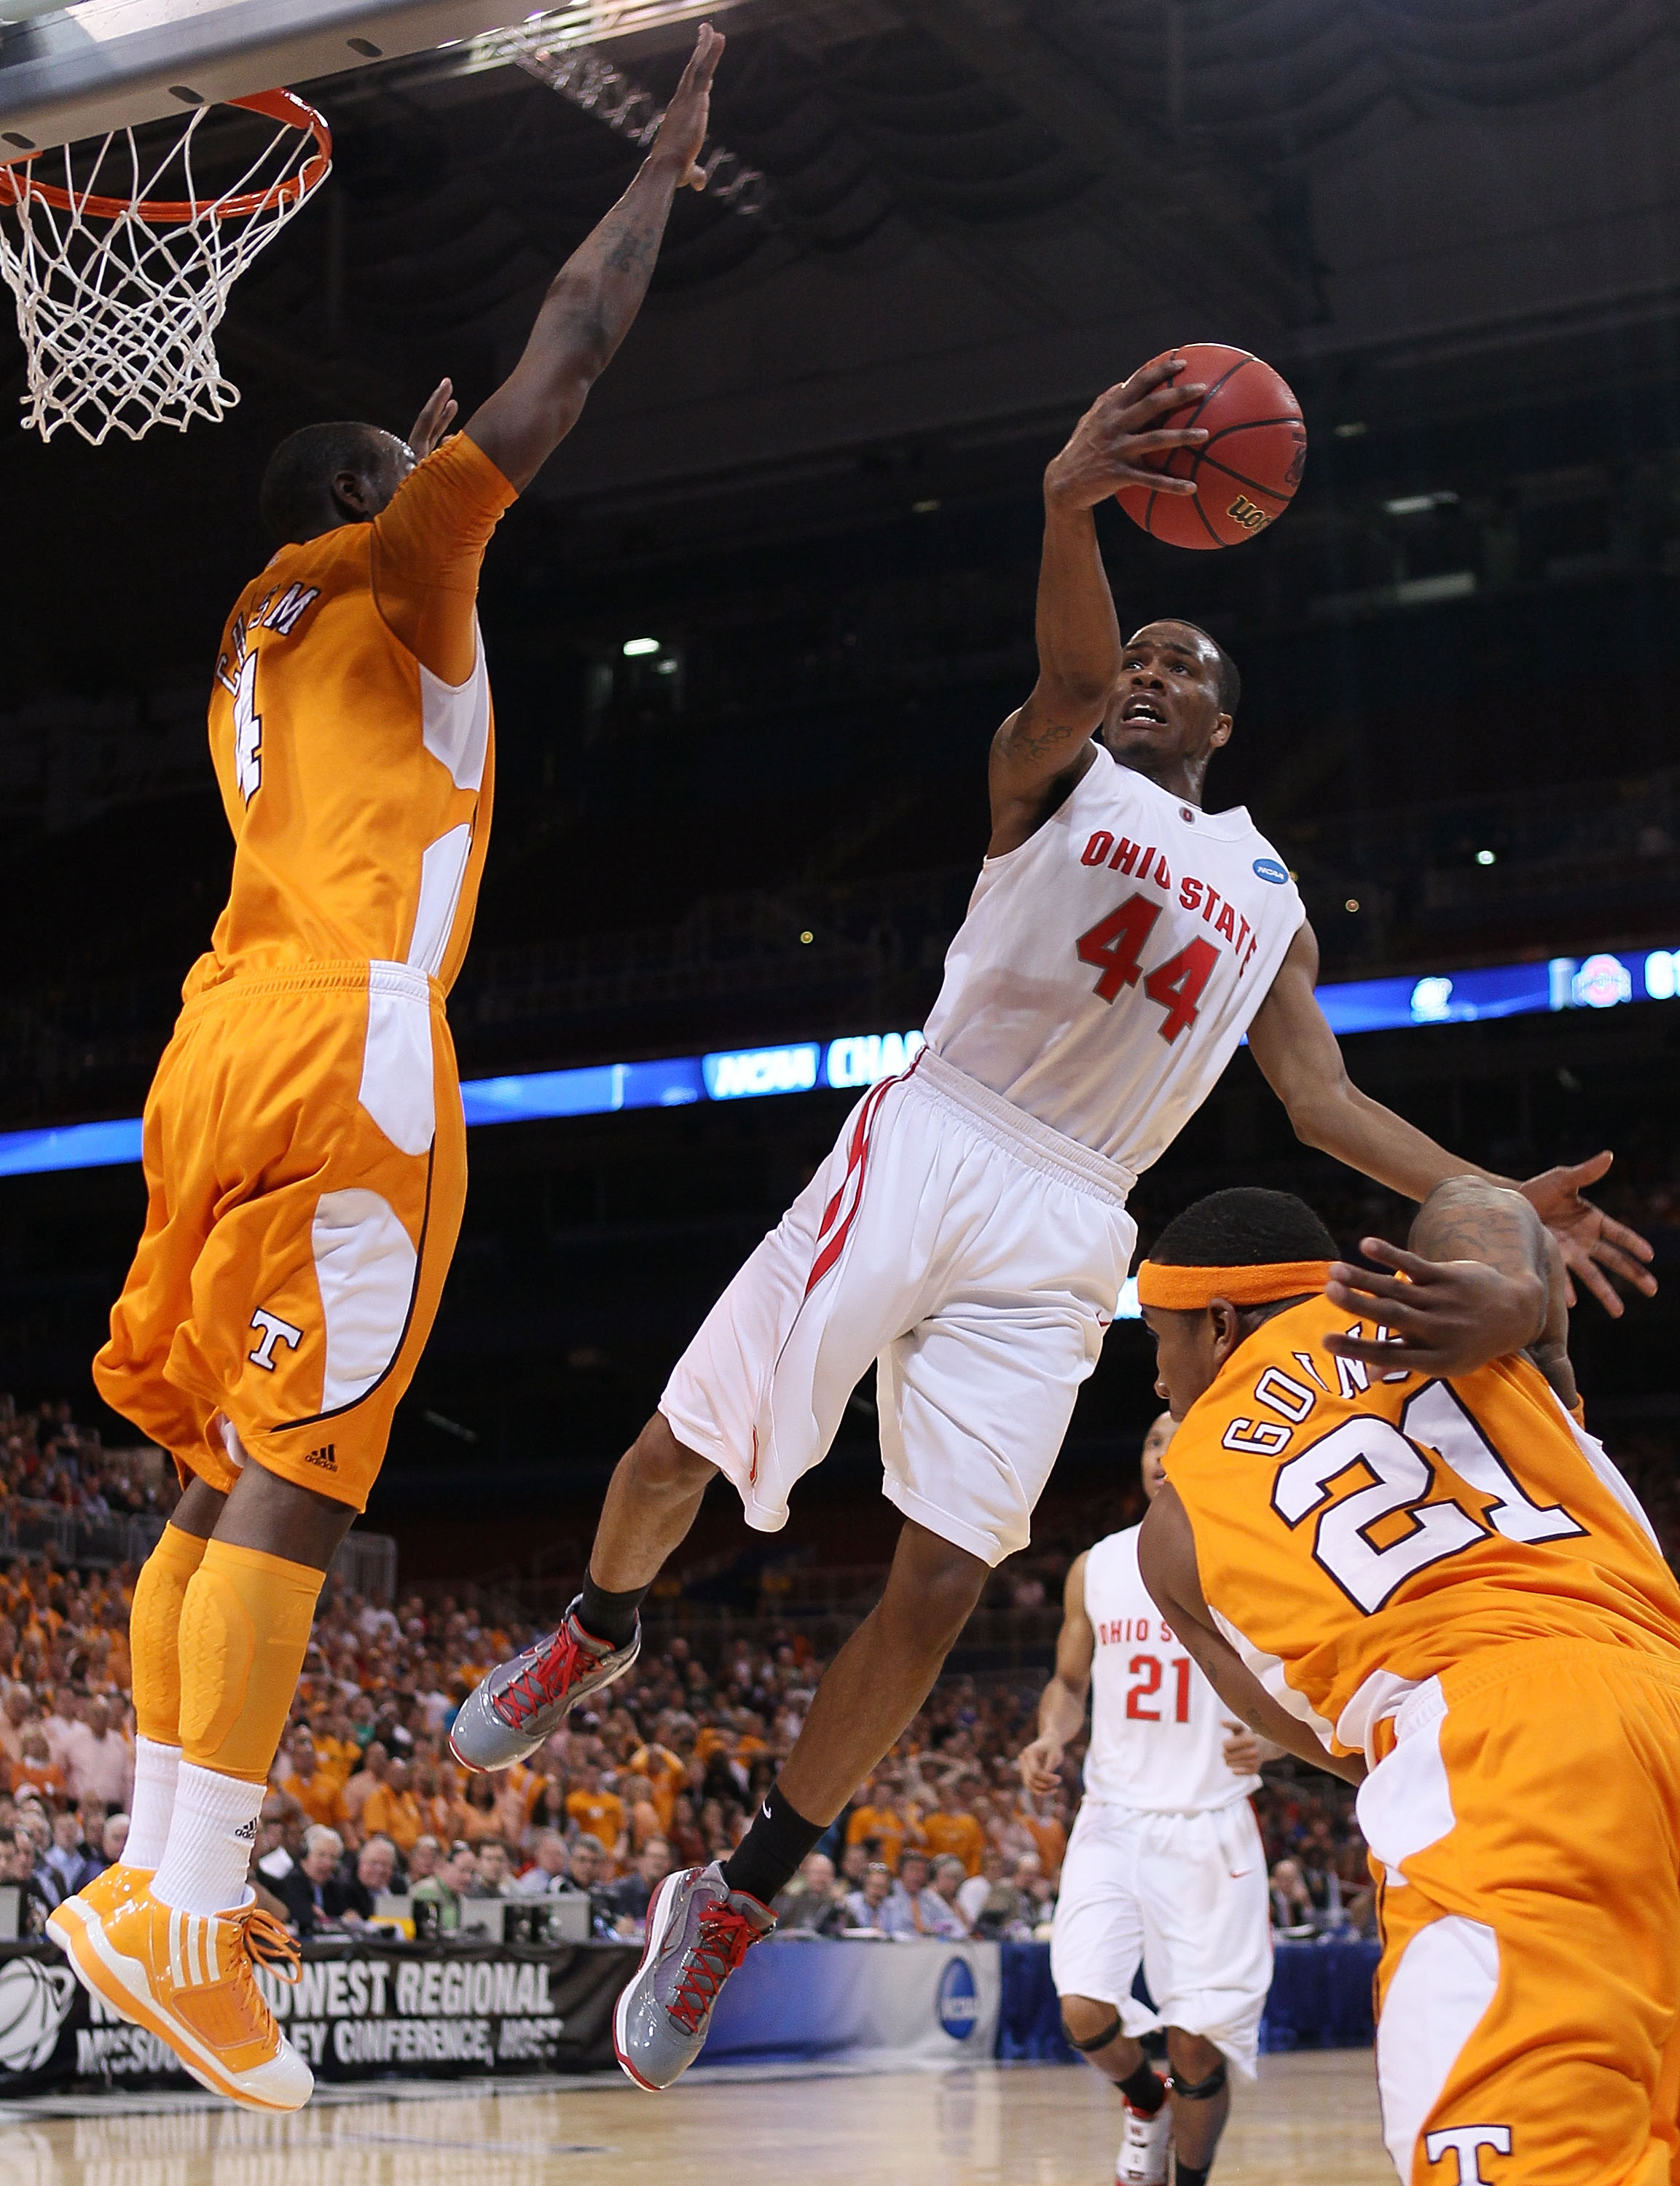 ST. LOUIS - MARCH 26:  William Buford #44 of the Ohio State Buckeyes goes up for a shot as Melvin Goins #21 and Wayne Chism #4 of the Tennessee Volunteers defend during the midwest regional semifinal of the 2010 NCAA men's basketball tournament at the Edw